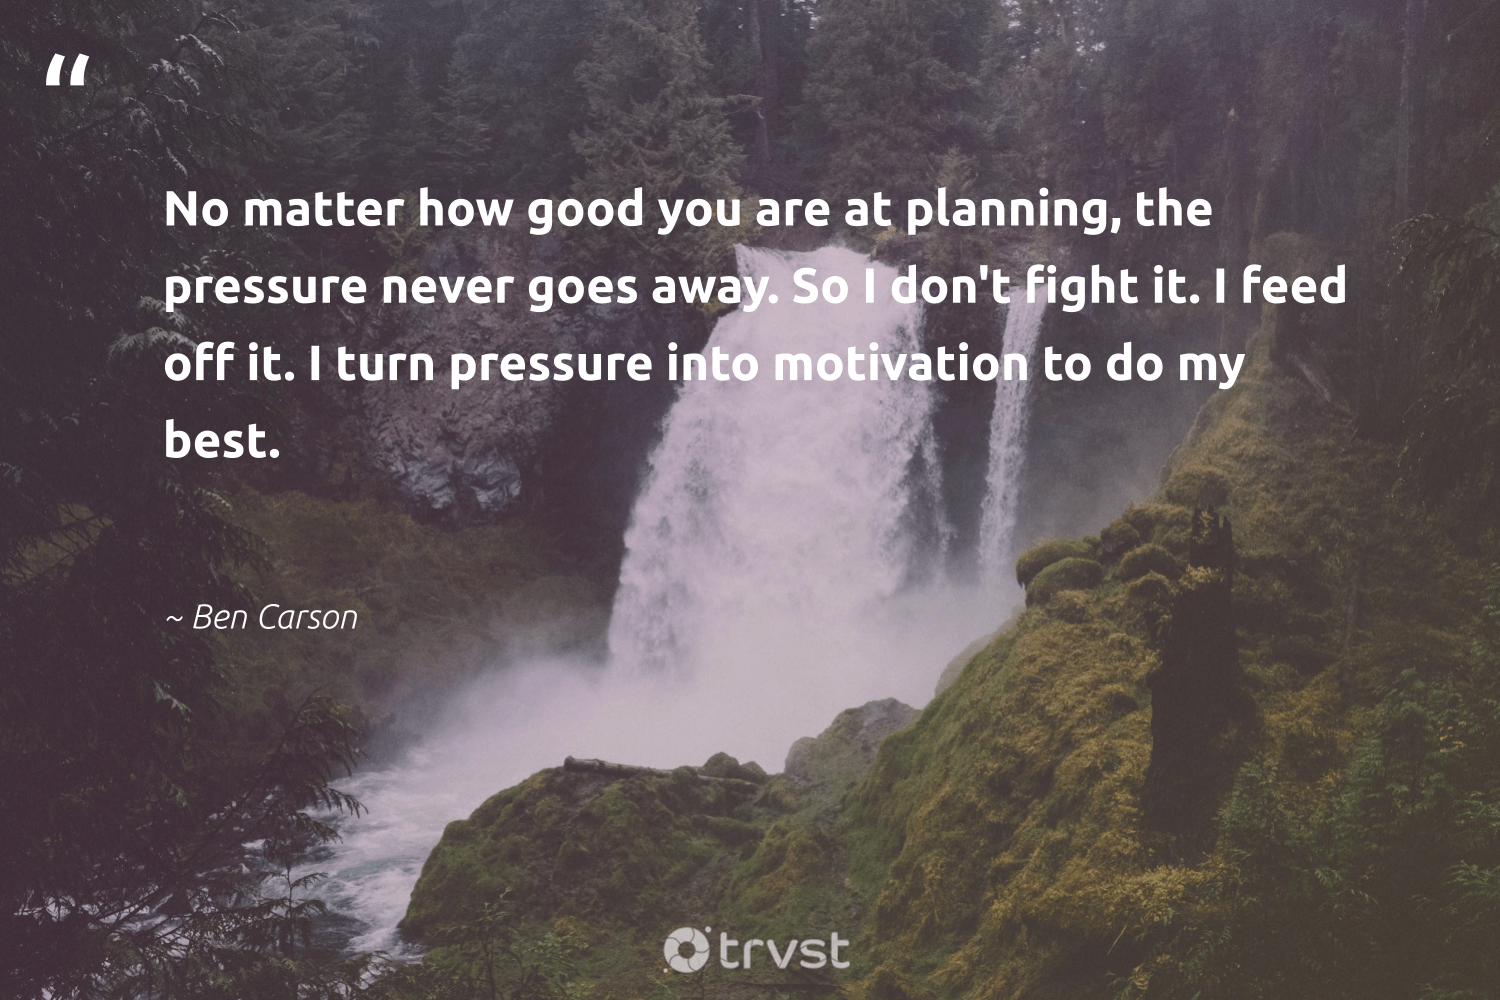 """""""No matter how good you are at planning, the pressure never goes away. So I don't fight it. I feed off it. I turn pressure into motivation to do my best.""""  - Ben Carson #trvst #quotes #motivation #mindful #softskills #mindset #gogreen #goals #futureofwork #changemakers #takeaction #growthmindset"""